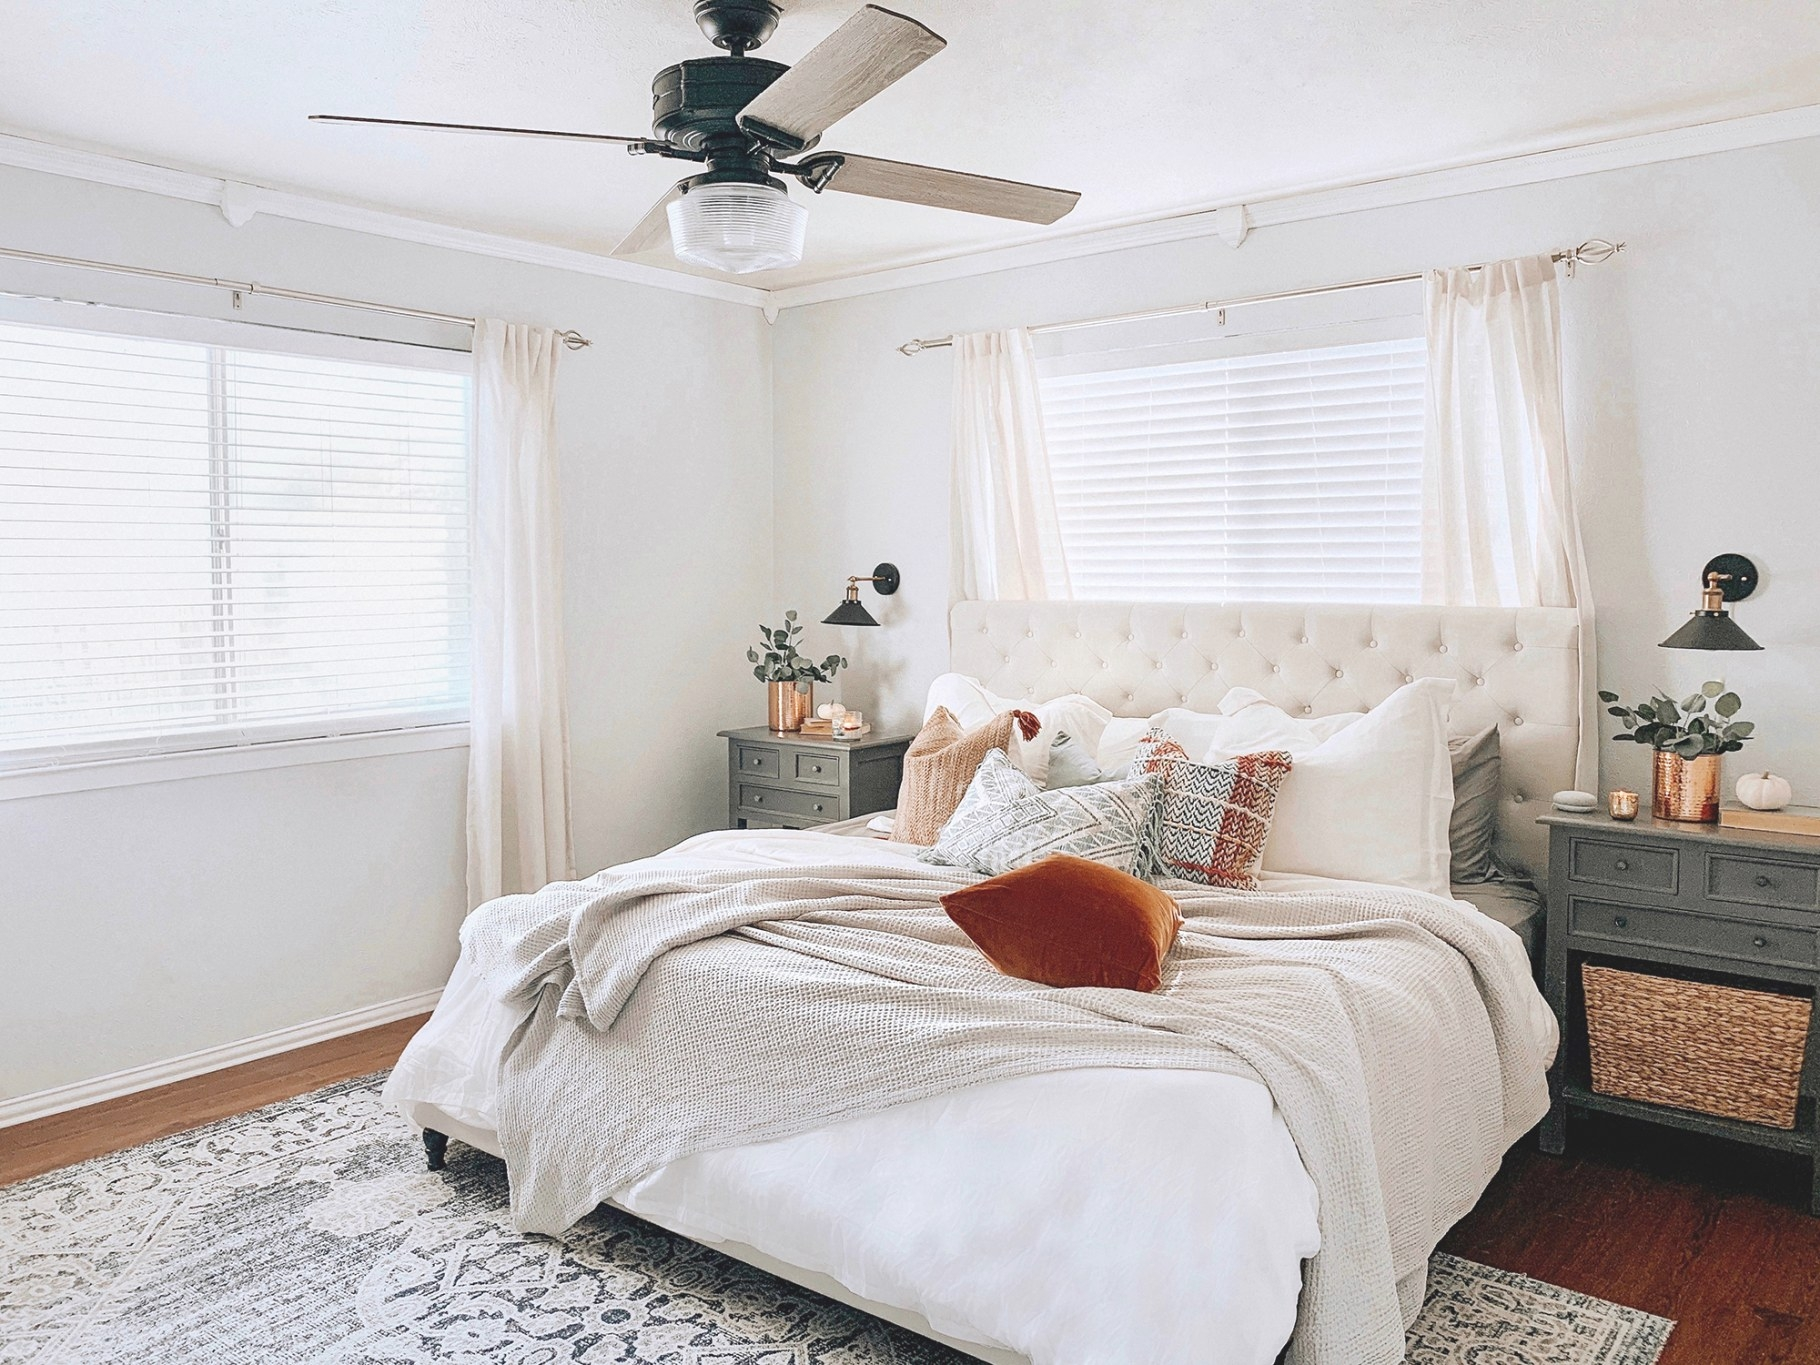 How To Choose A Ceiling Fan Guide: The Style - Hunter Fan Blog inside Ceiling Fan In Bedroom